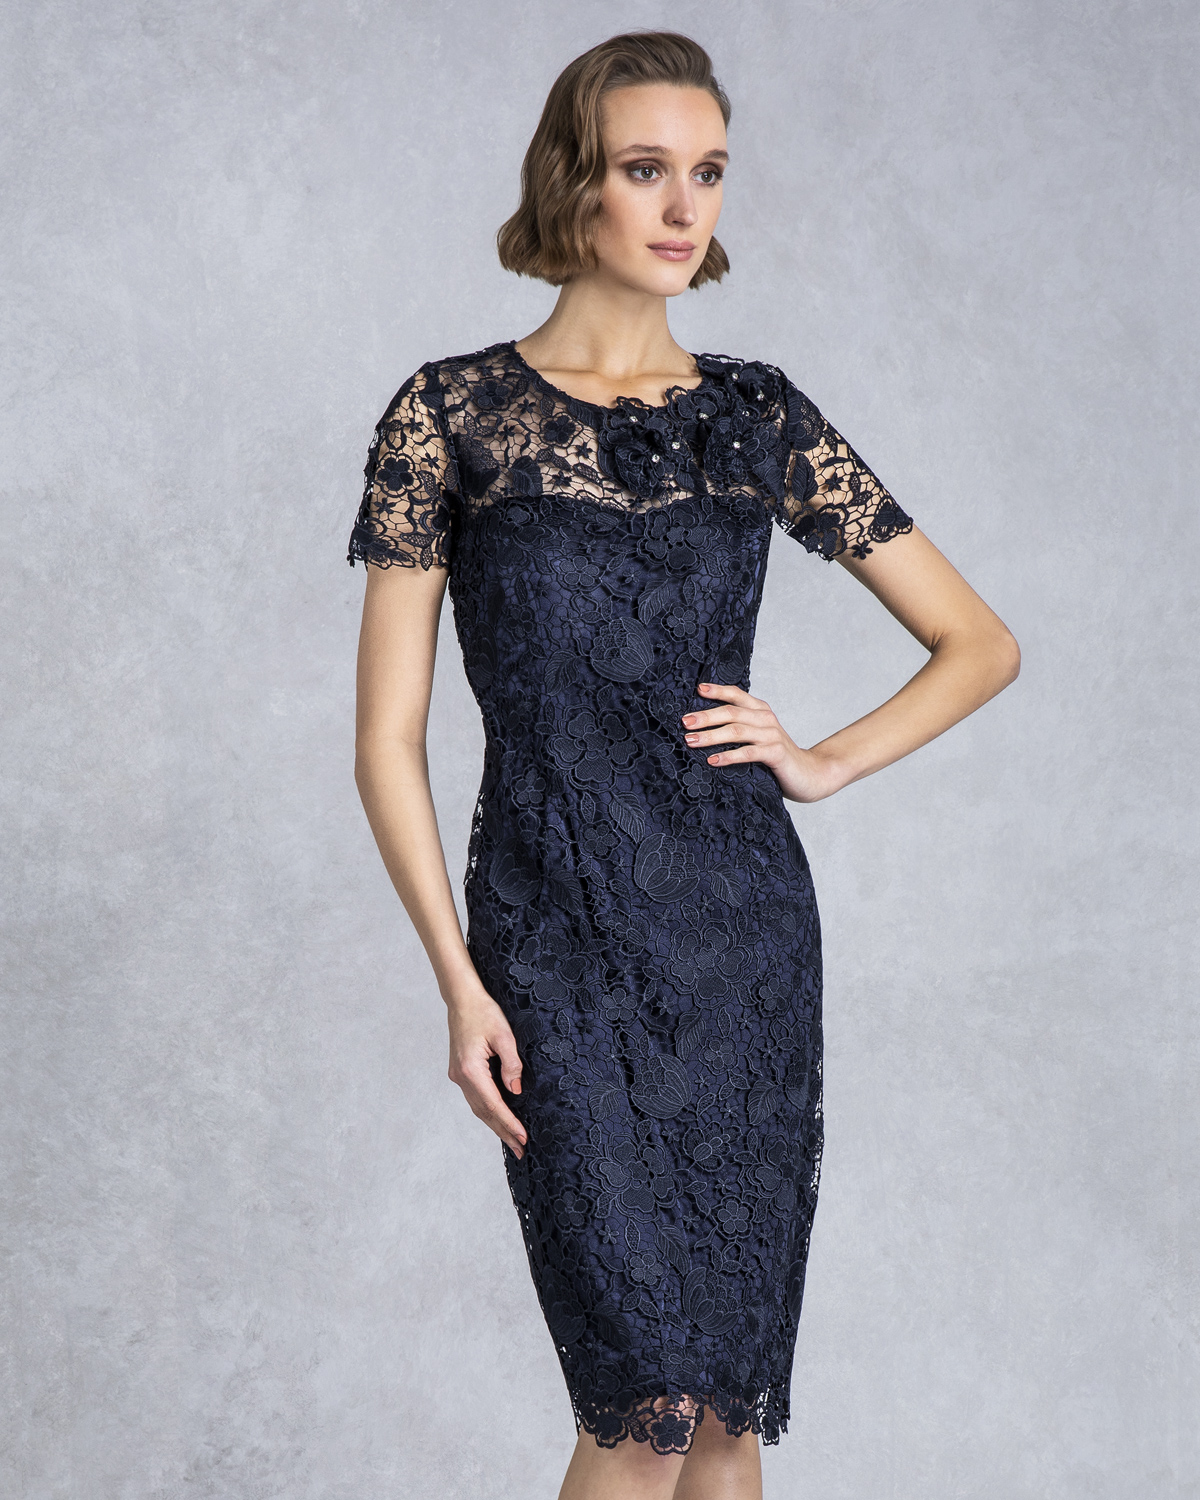 Classic Dresses / Mother of the bride short lace dress with sleeves